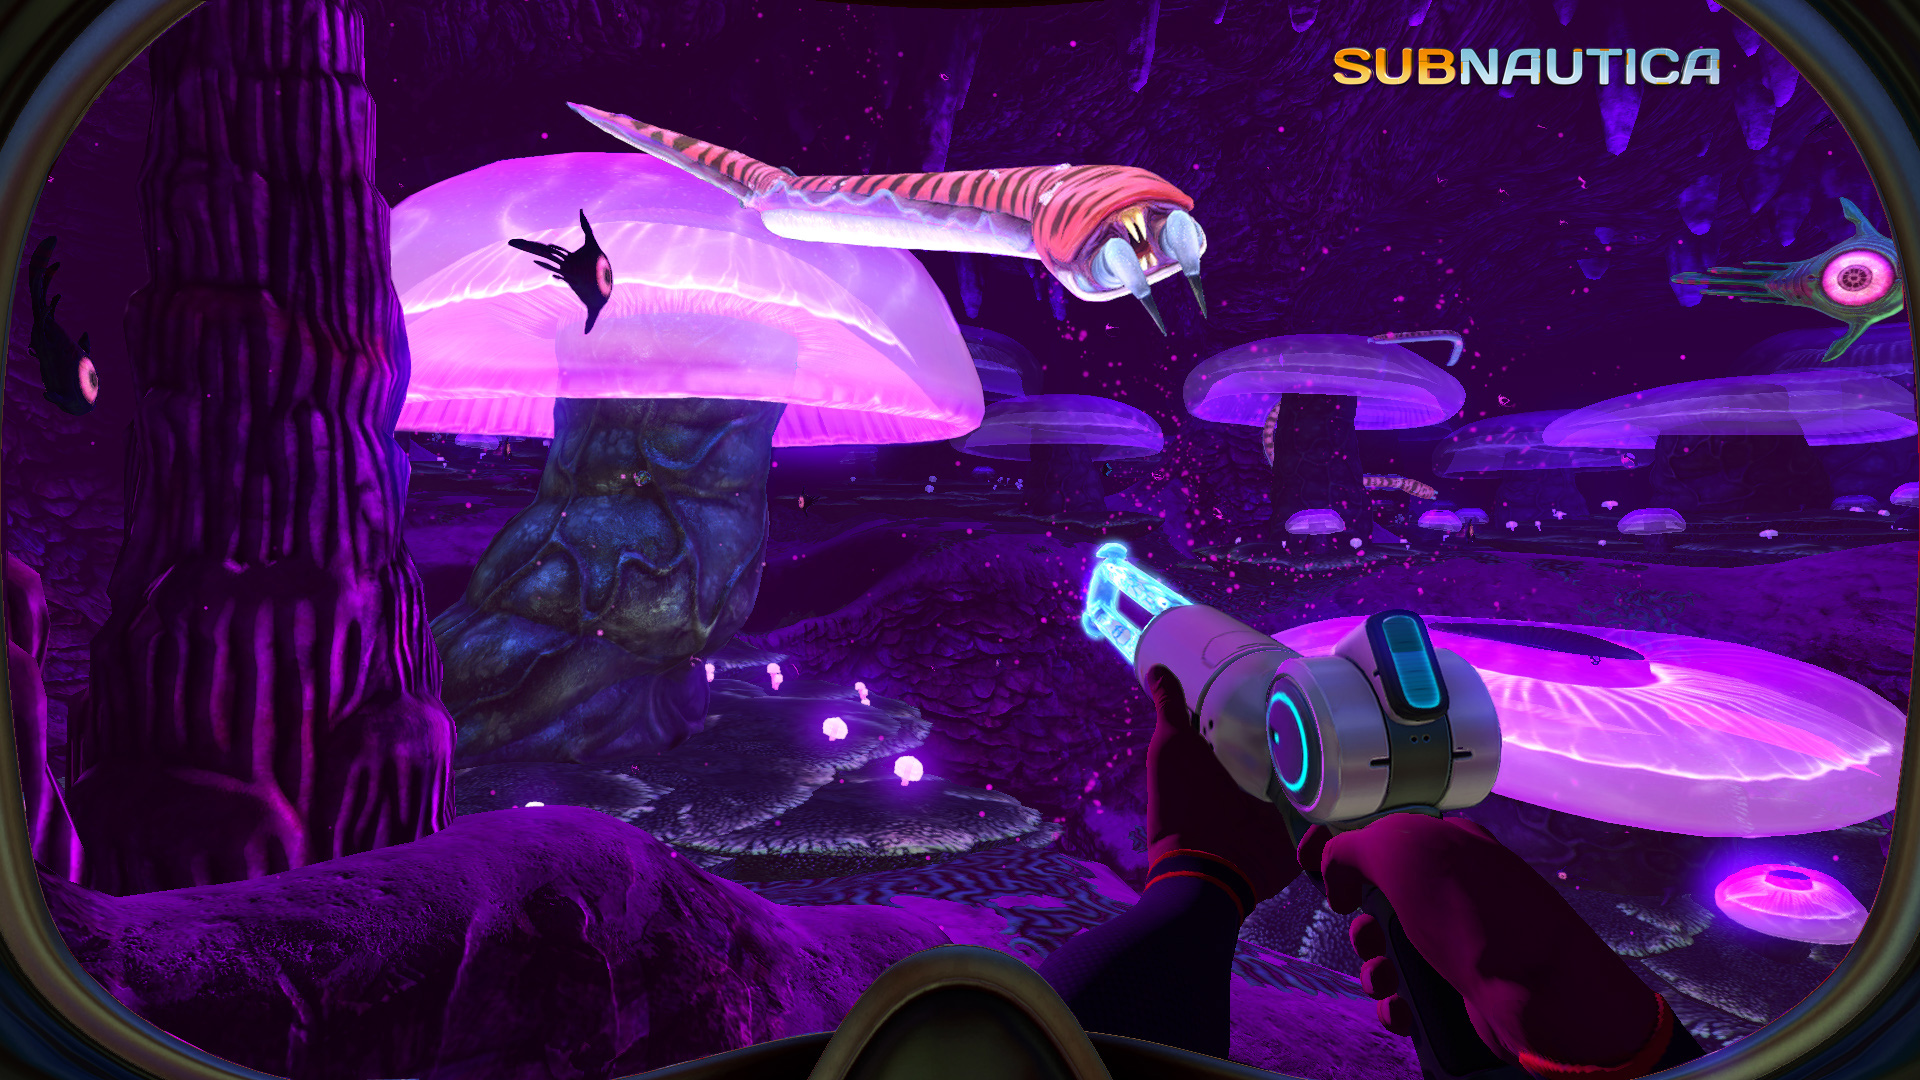 Subnautica exits Steam Early Access in two weeks screenshot